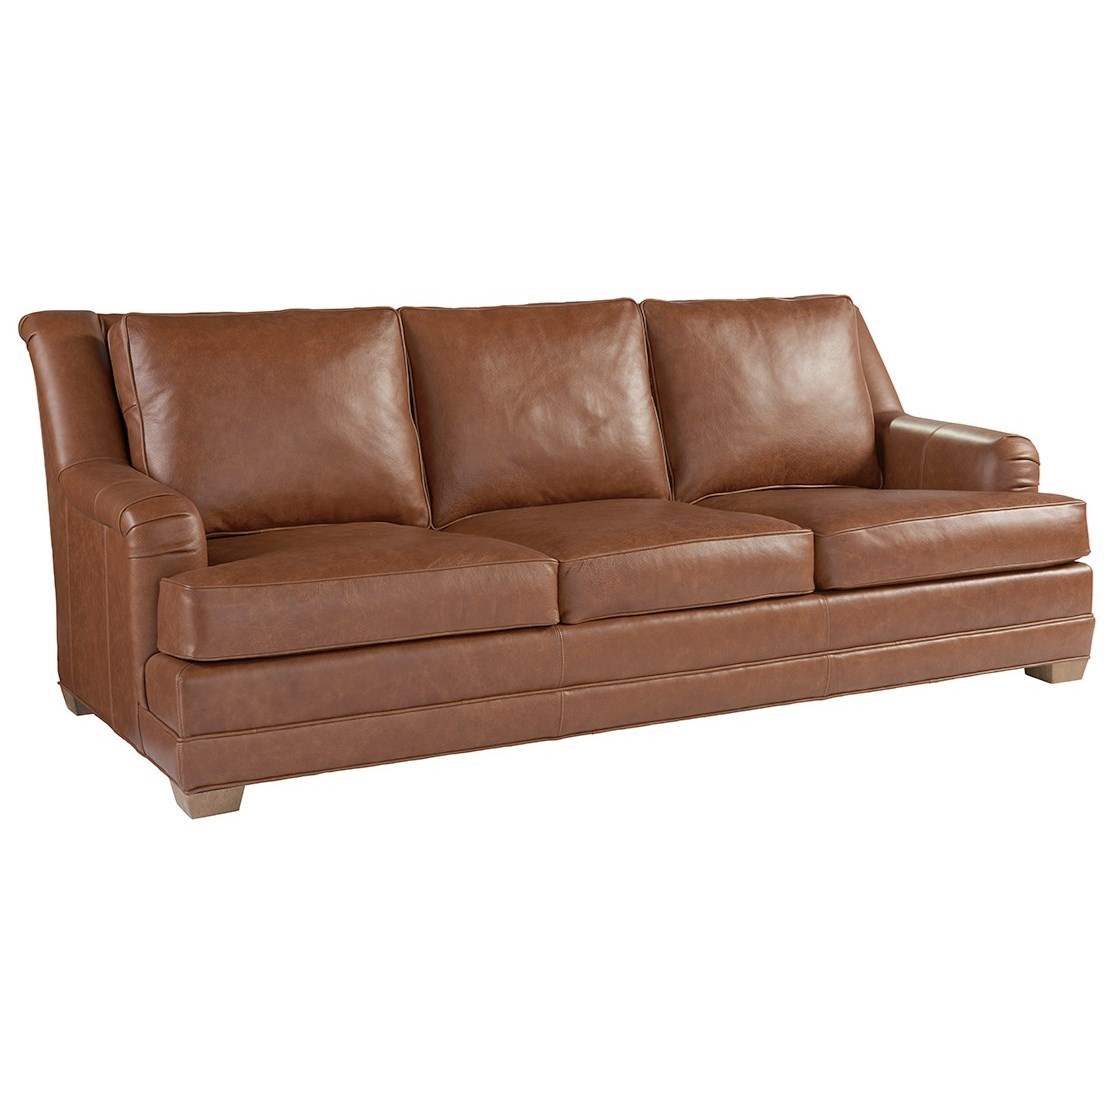 Los Sofas Tommy Bahama Home Los Altos 9032 33 01 Benton Transitional Wing